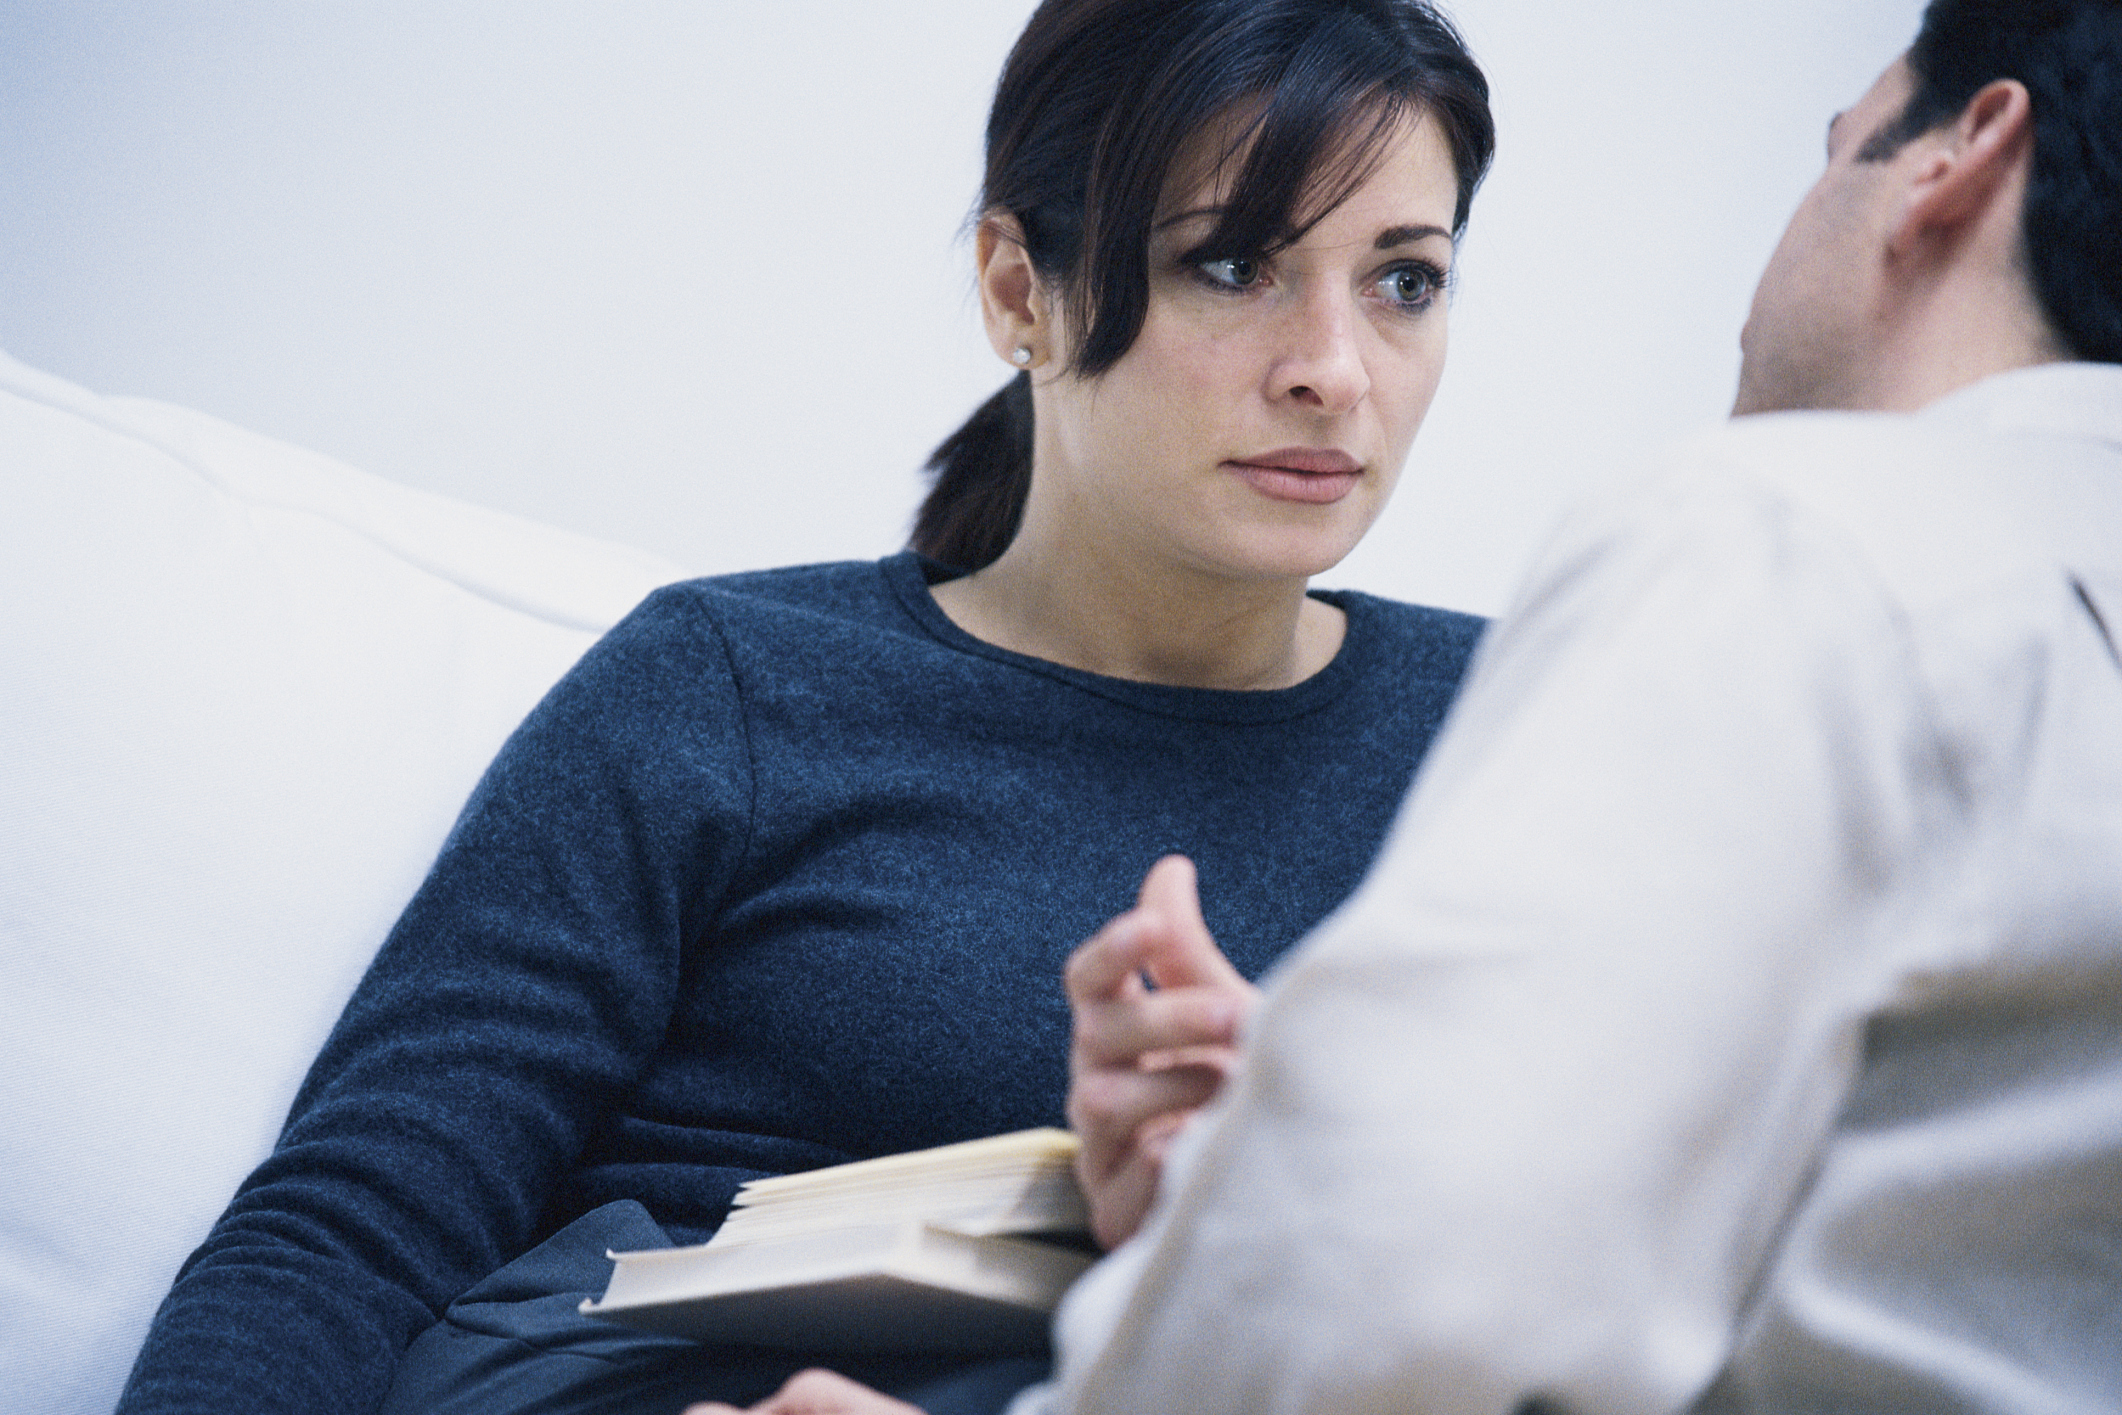 How to Be Gracious When Interacting With an Ex-Spouse